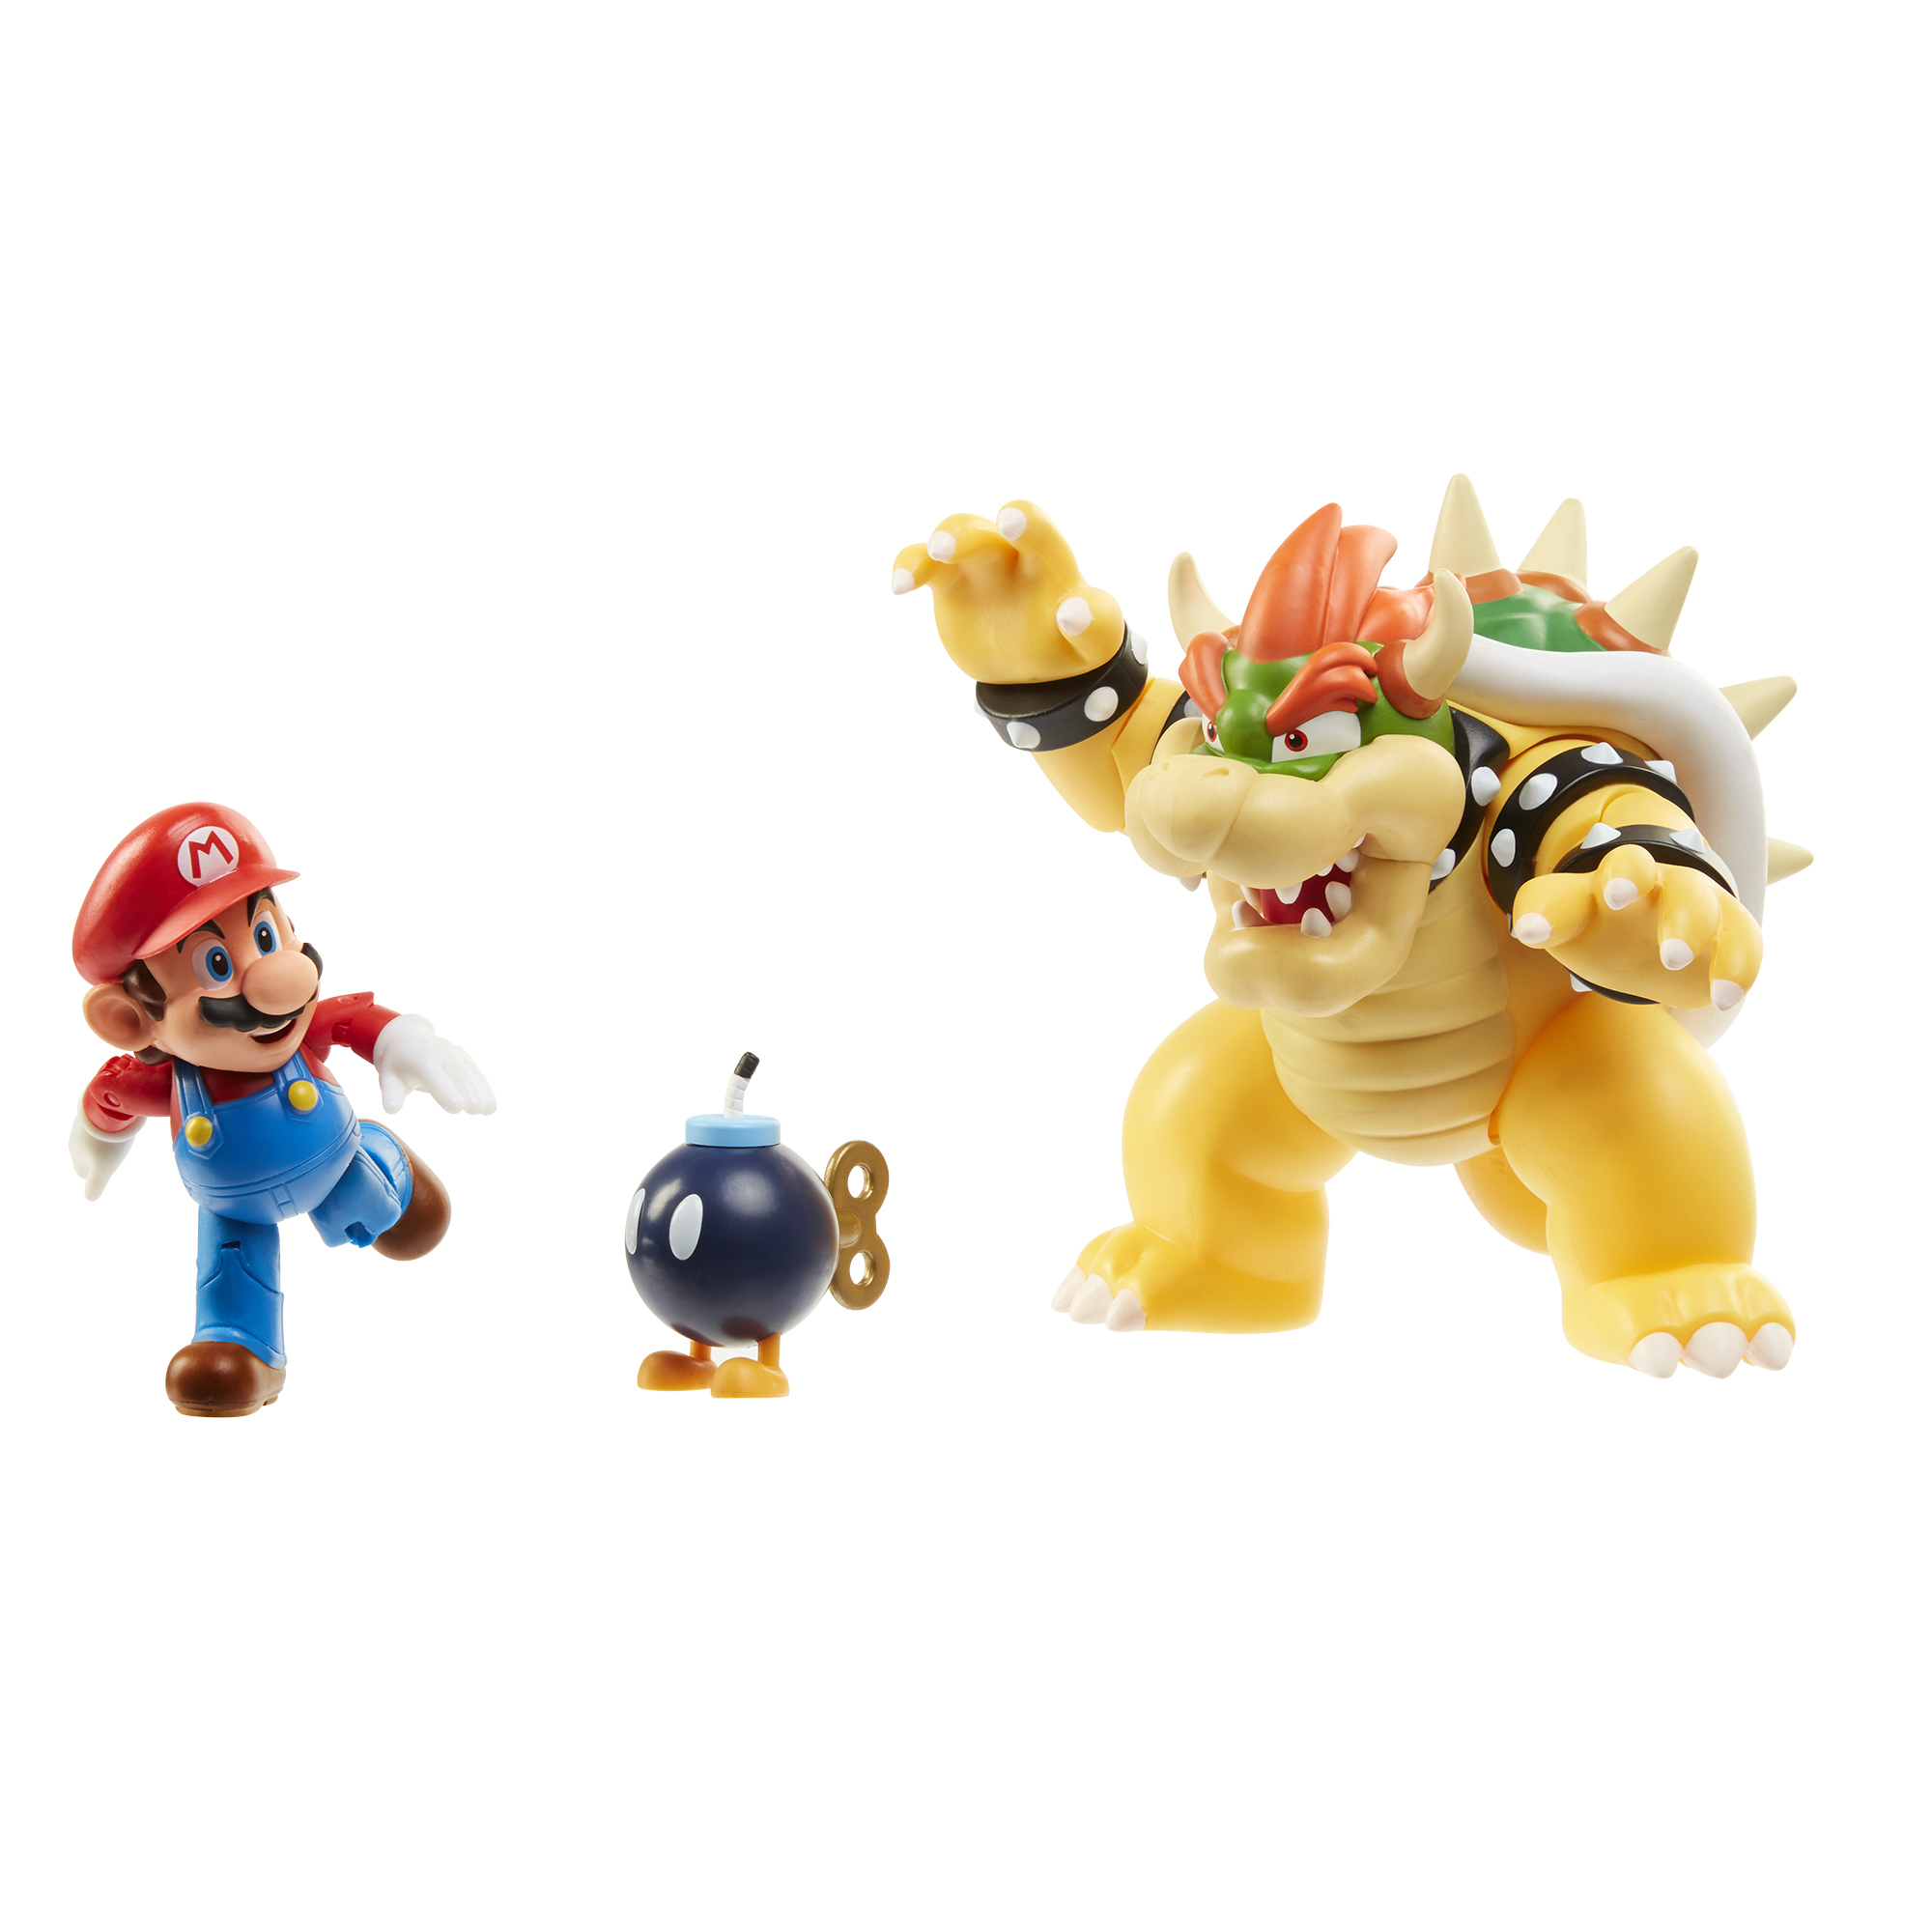 Super Mario vs. Bowser Diorama Set